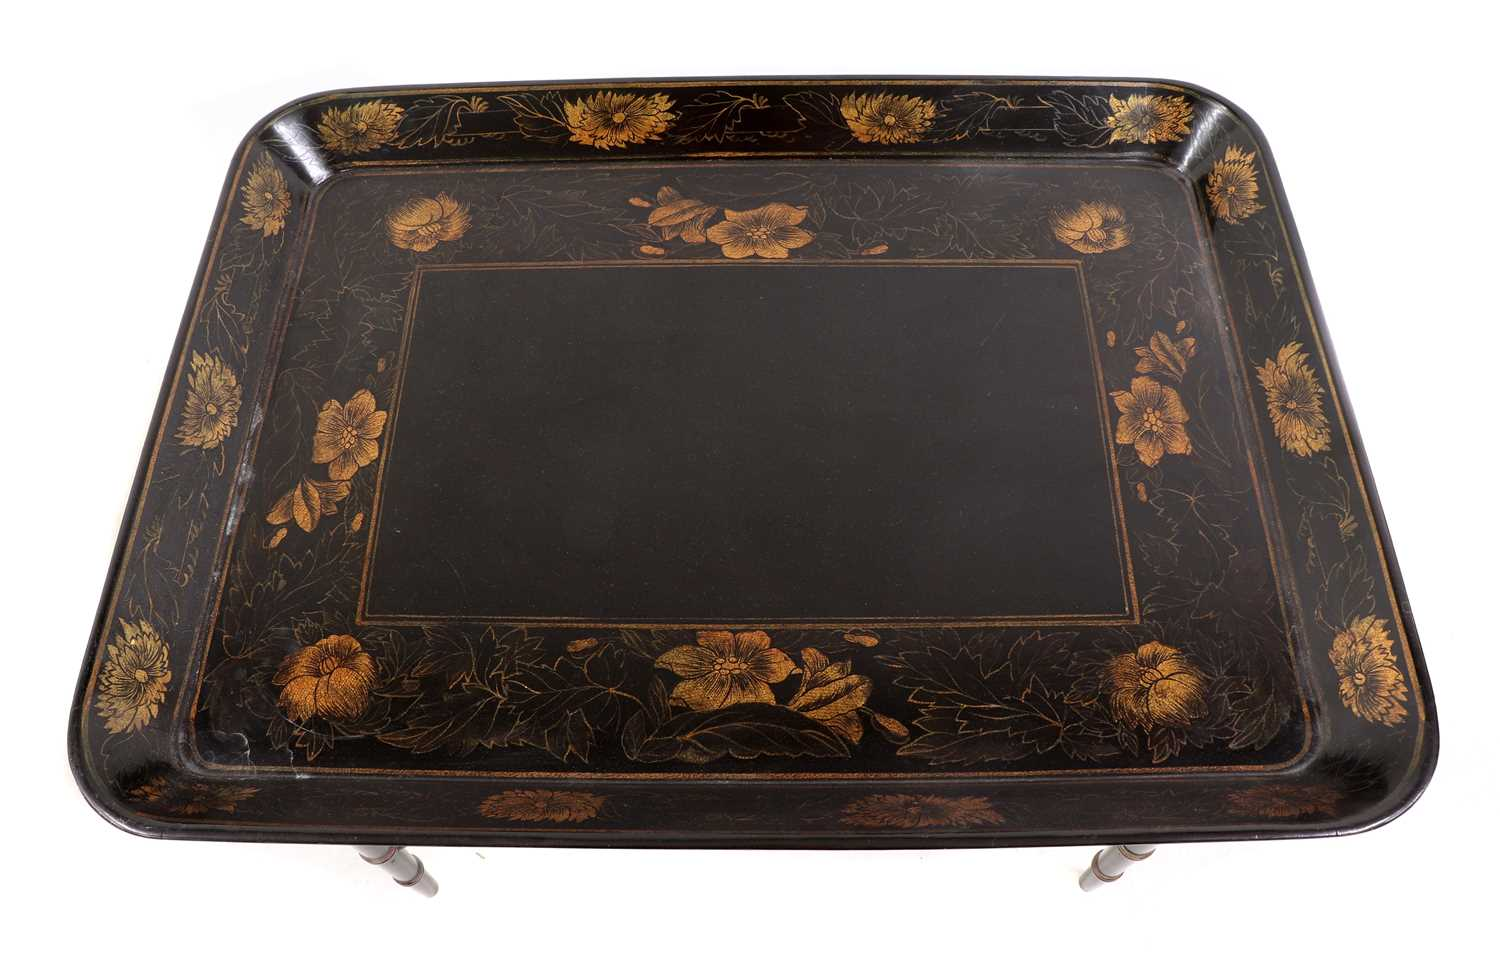 A pair of Regency-style papier mâché tray-top side tables, - Image 3 of 5